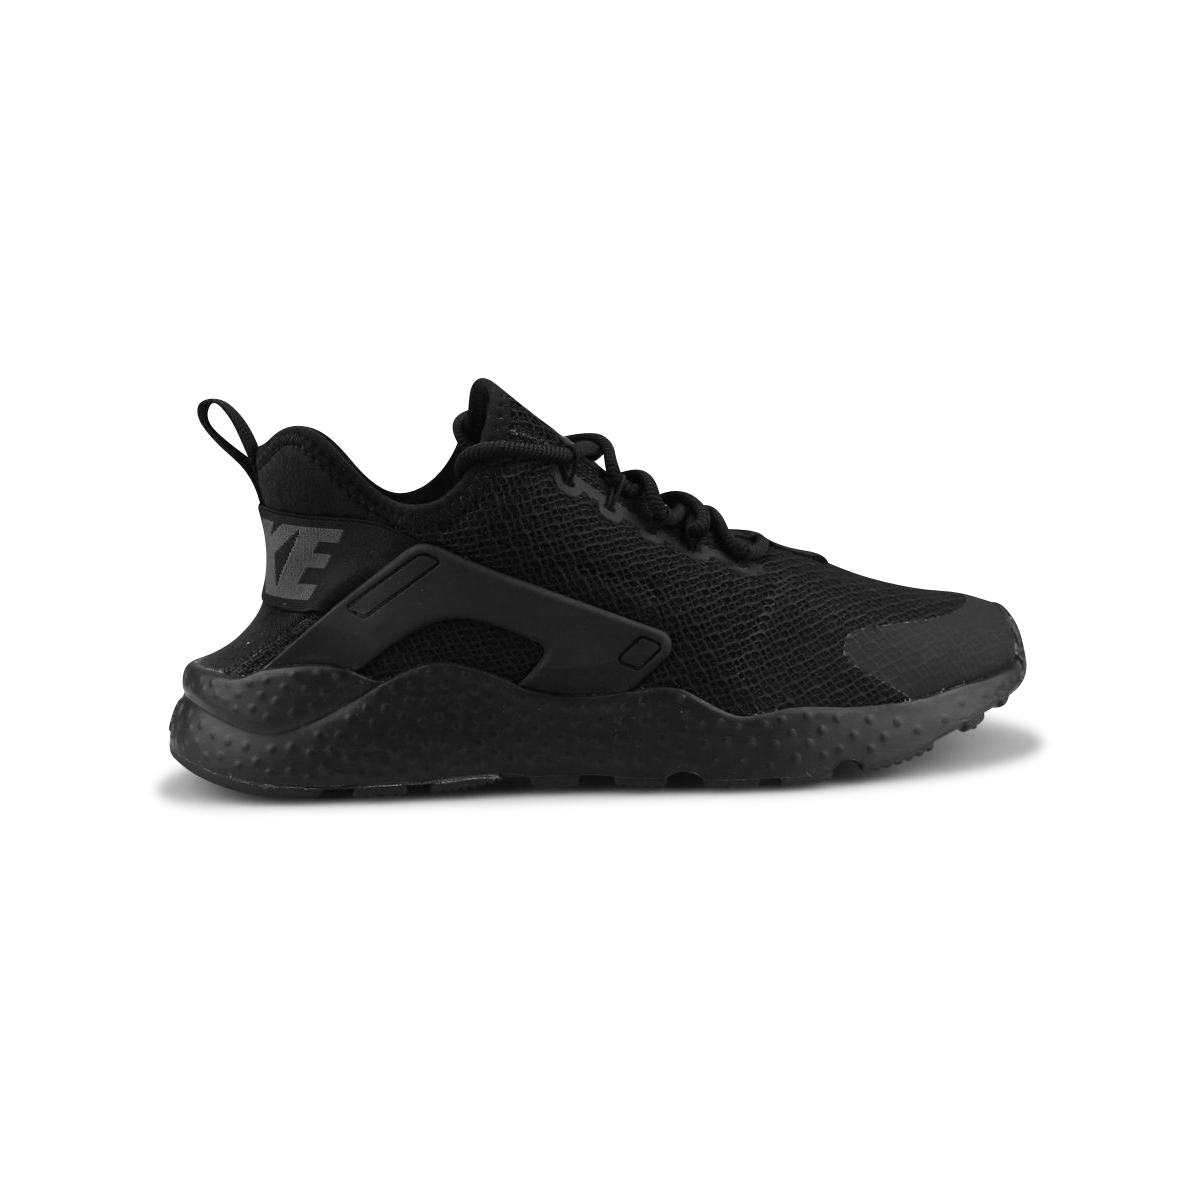 new style 961ac a5166 WMNS NIKE AIR HUARACHE RUN ULTRA NOIR 819151-001